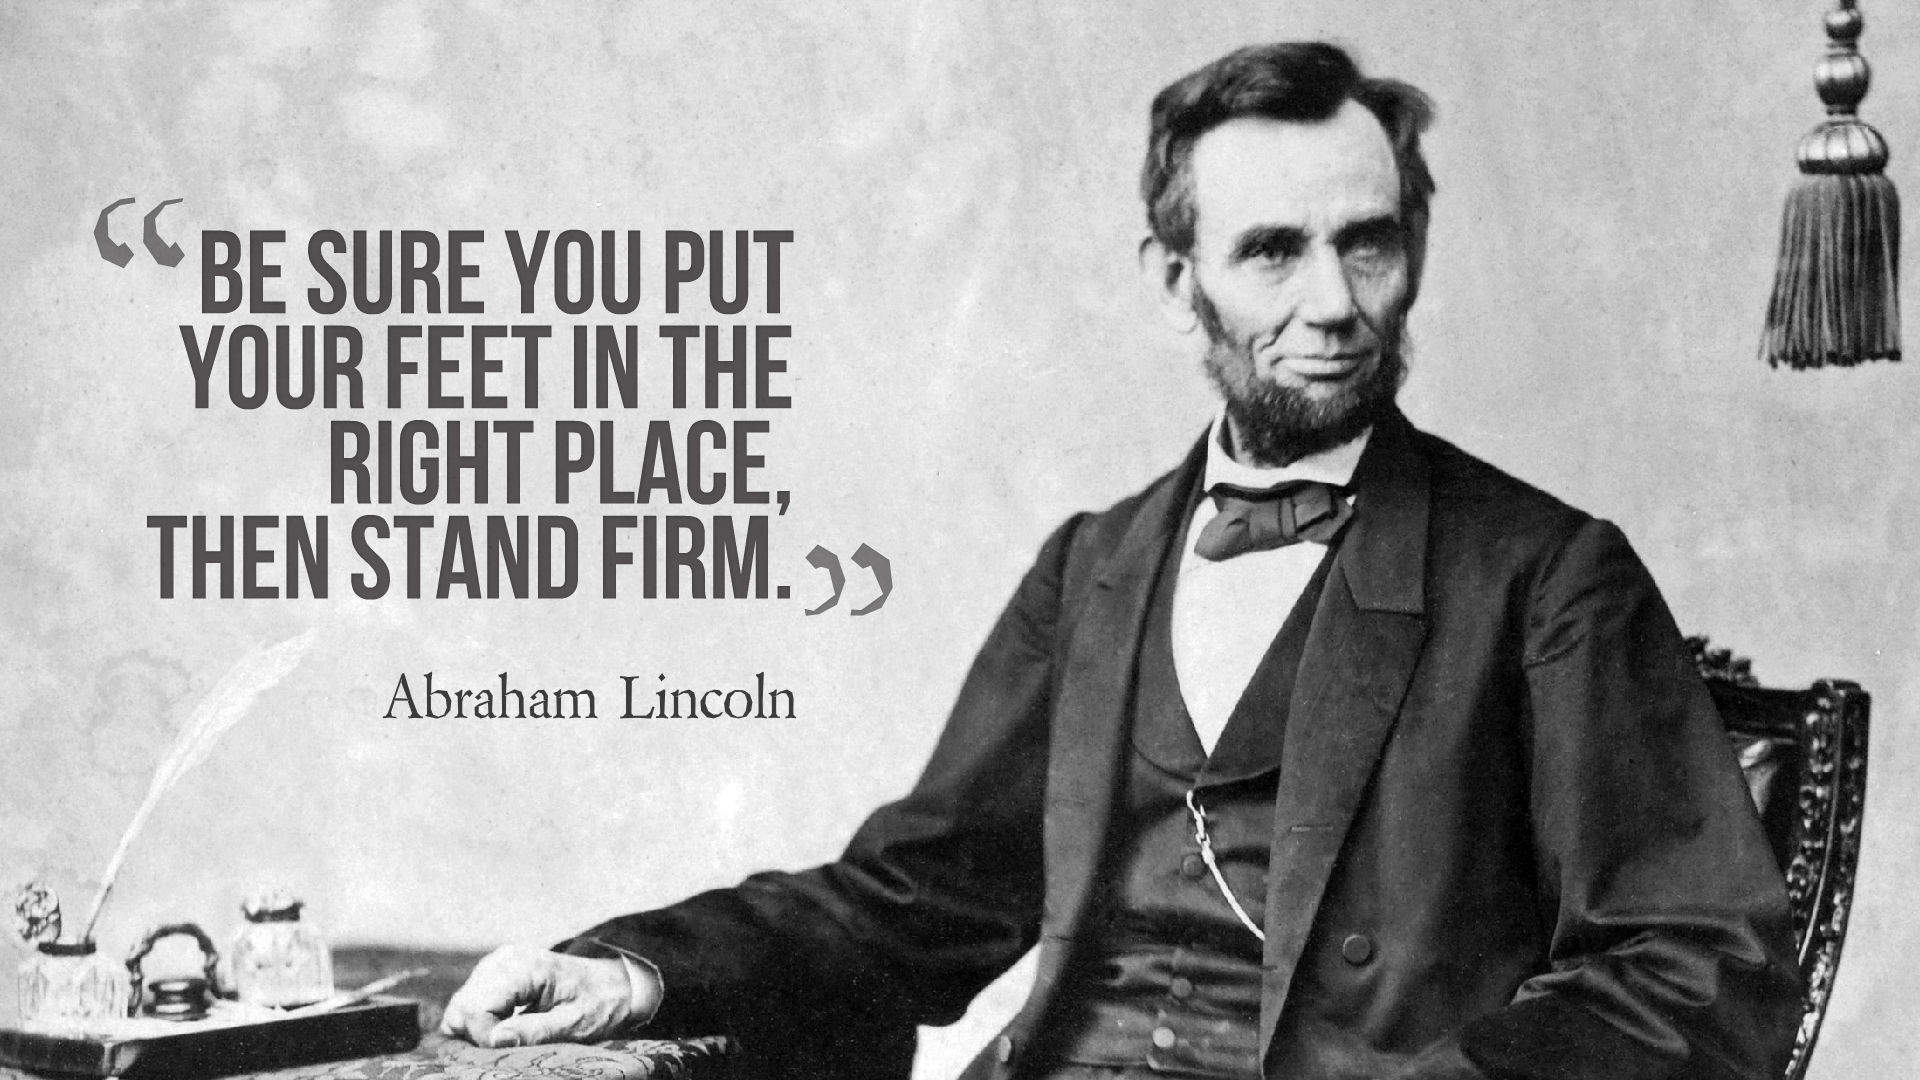 Abraham Lincoln Quotes Background Wallpaper 13771   Baltana 1920x1080